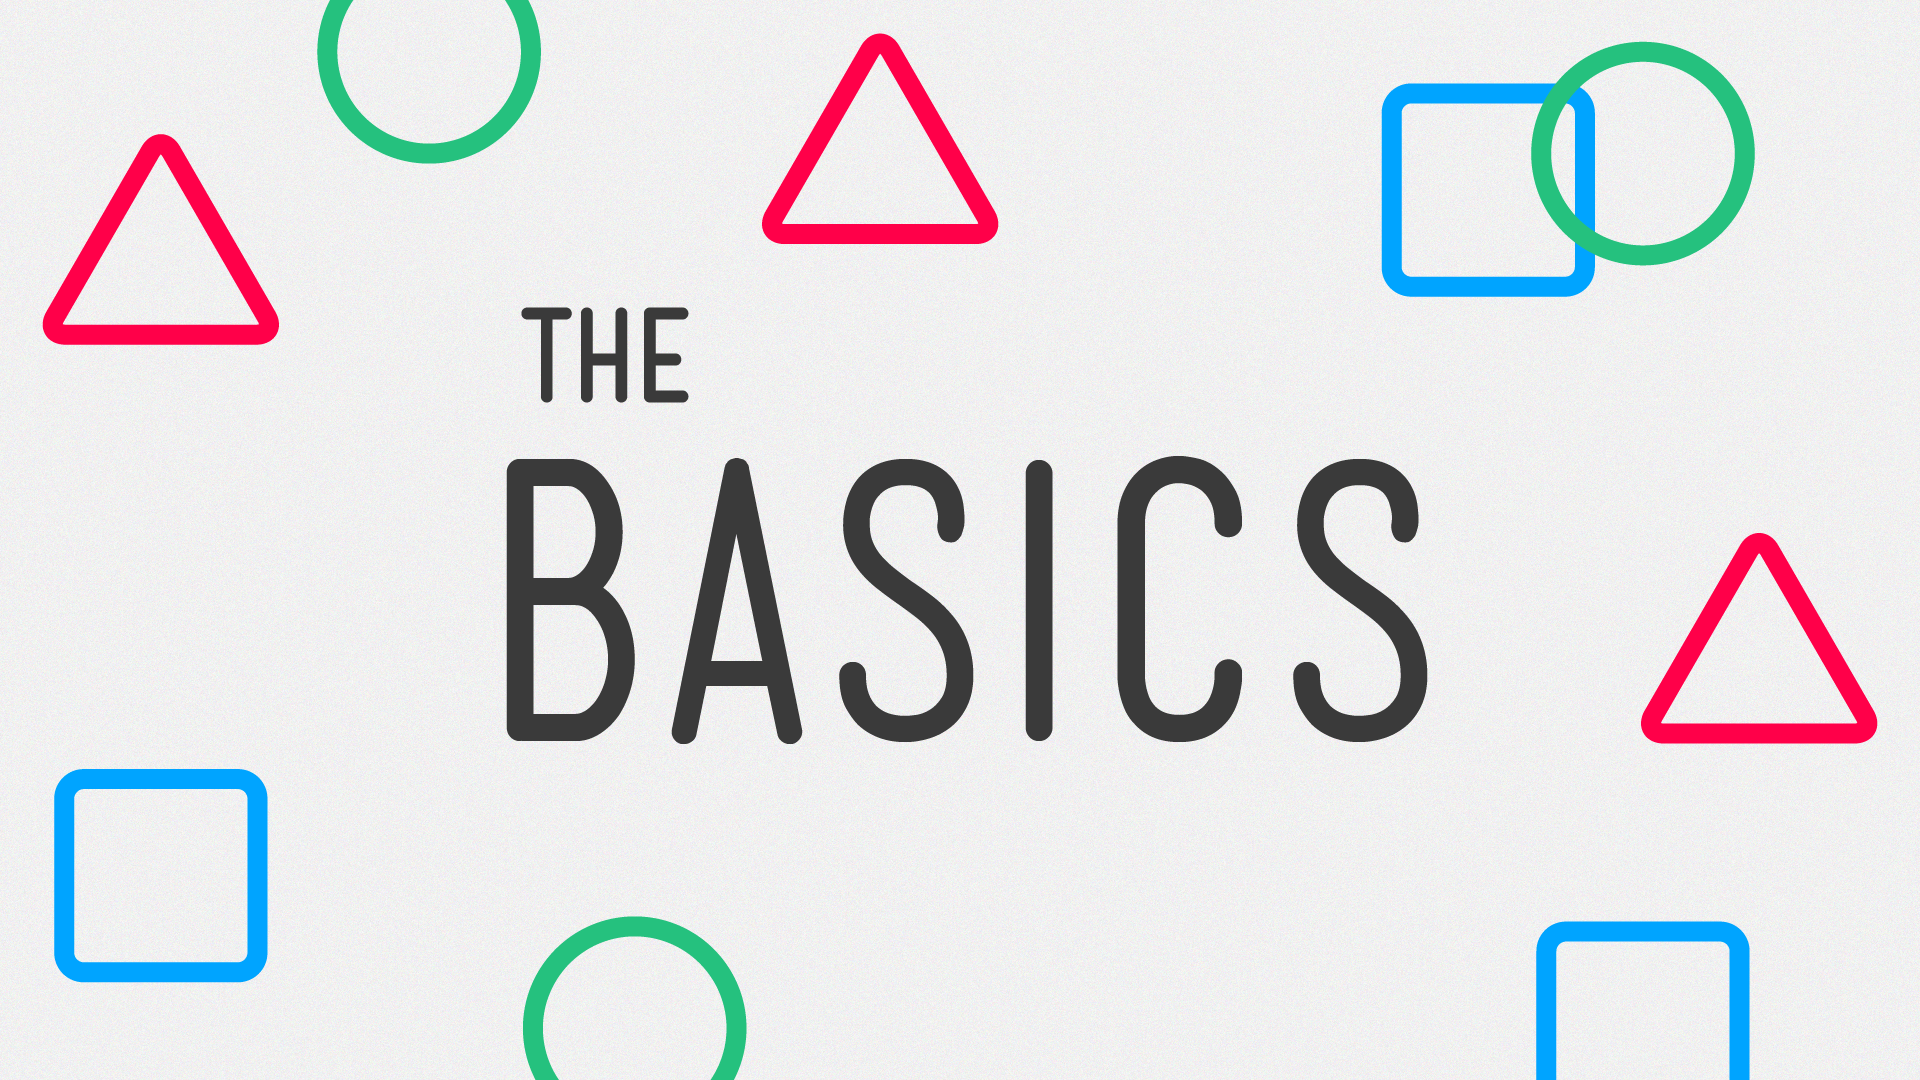 The Basics Sermon Art_1920x1080 copy.png